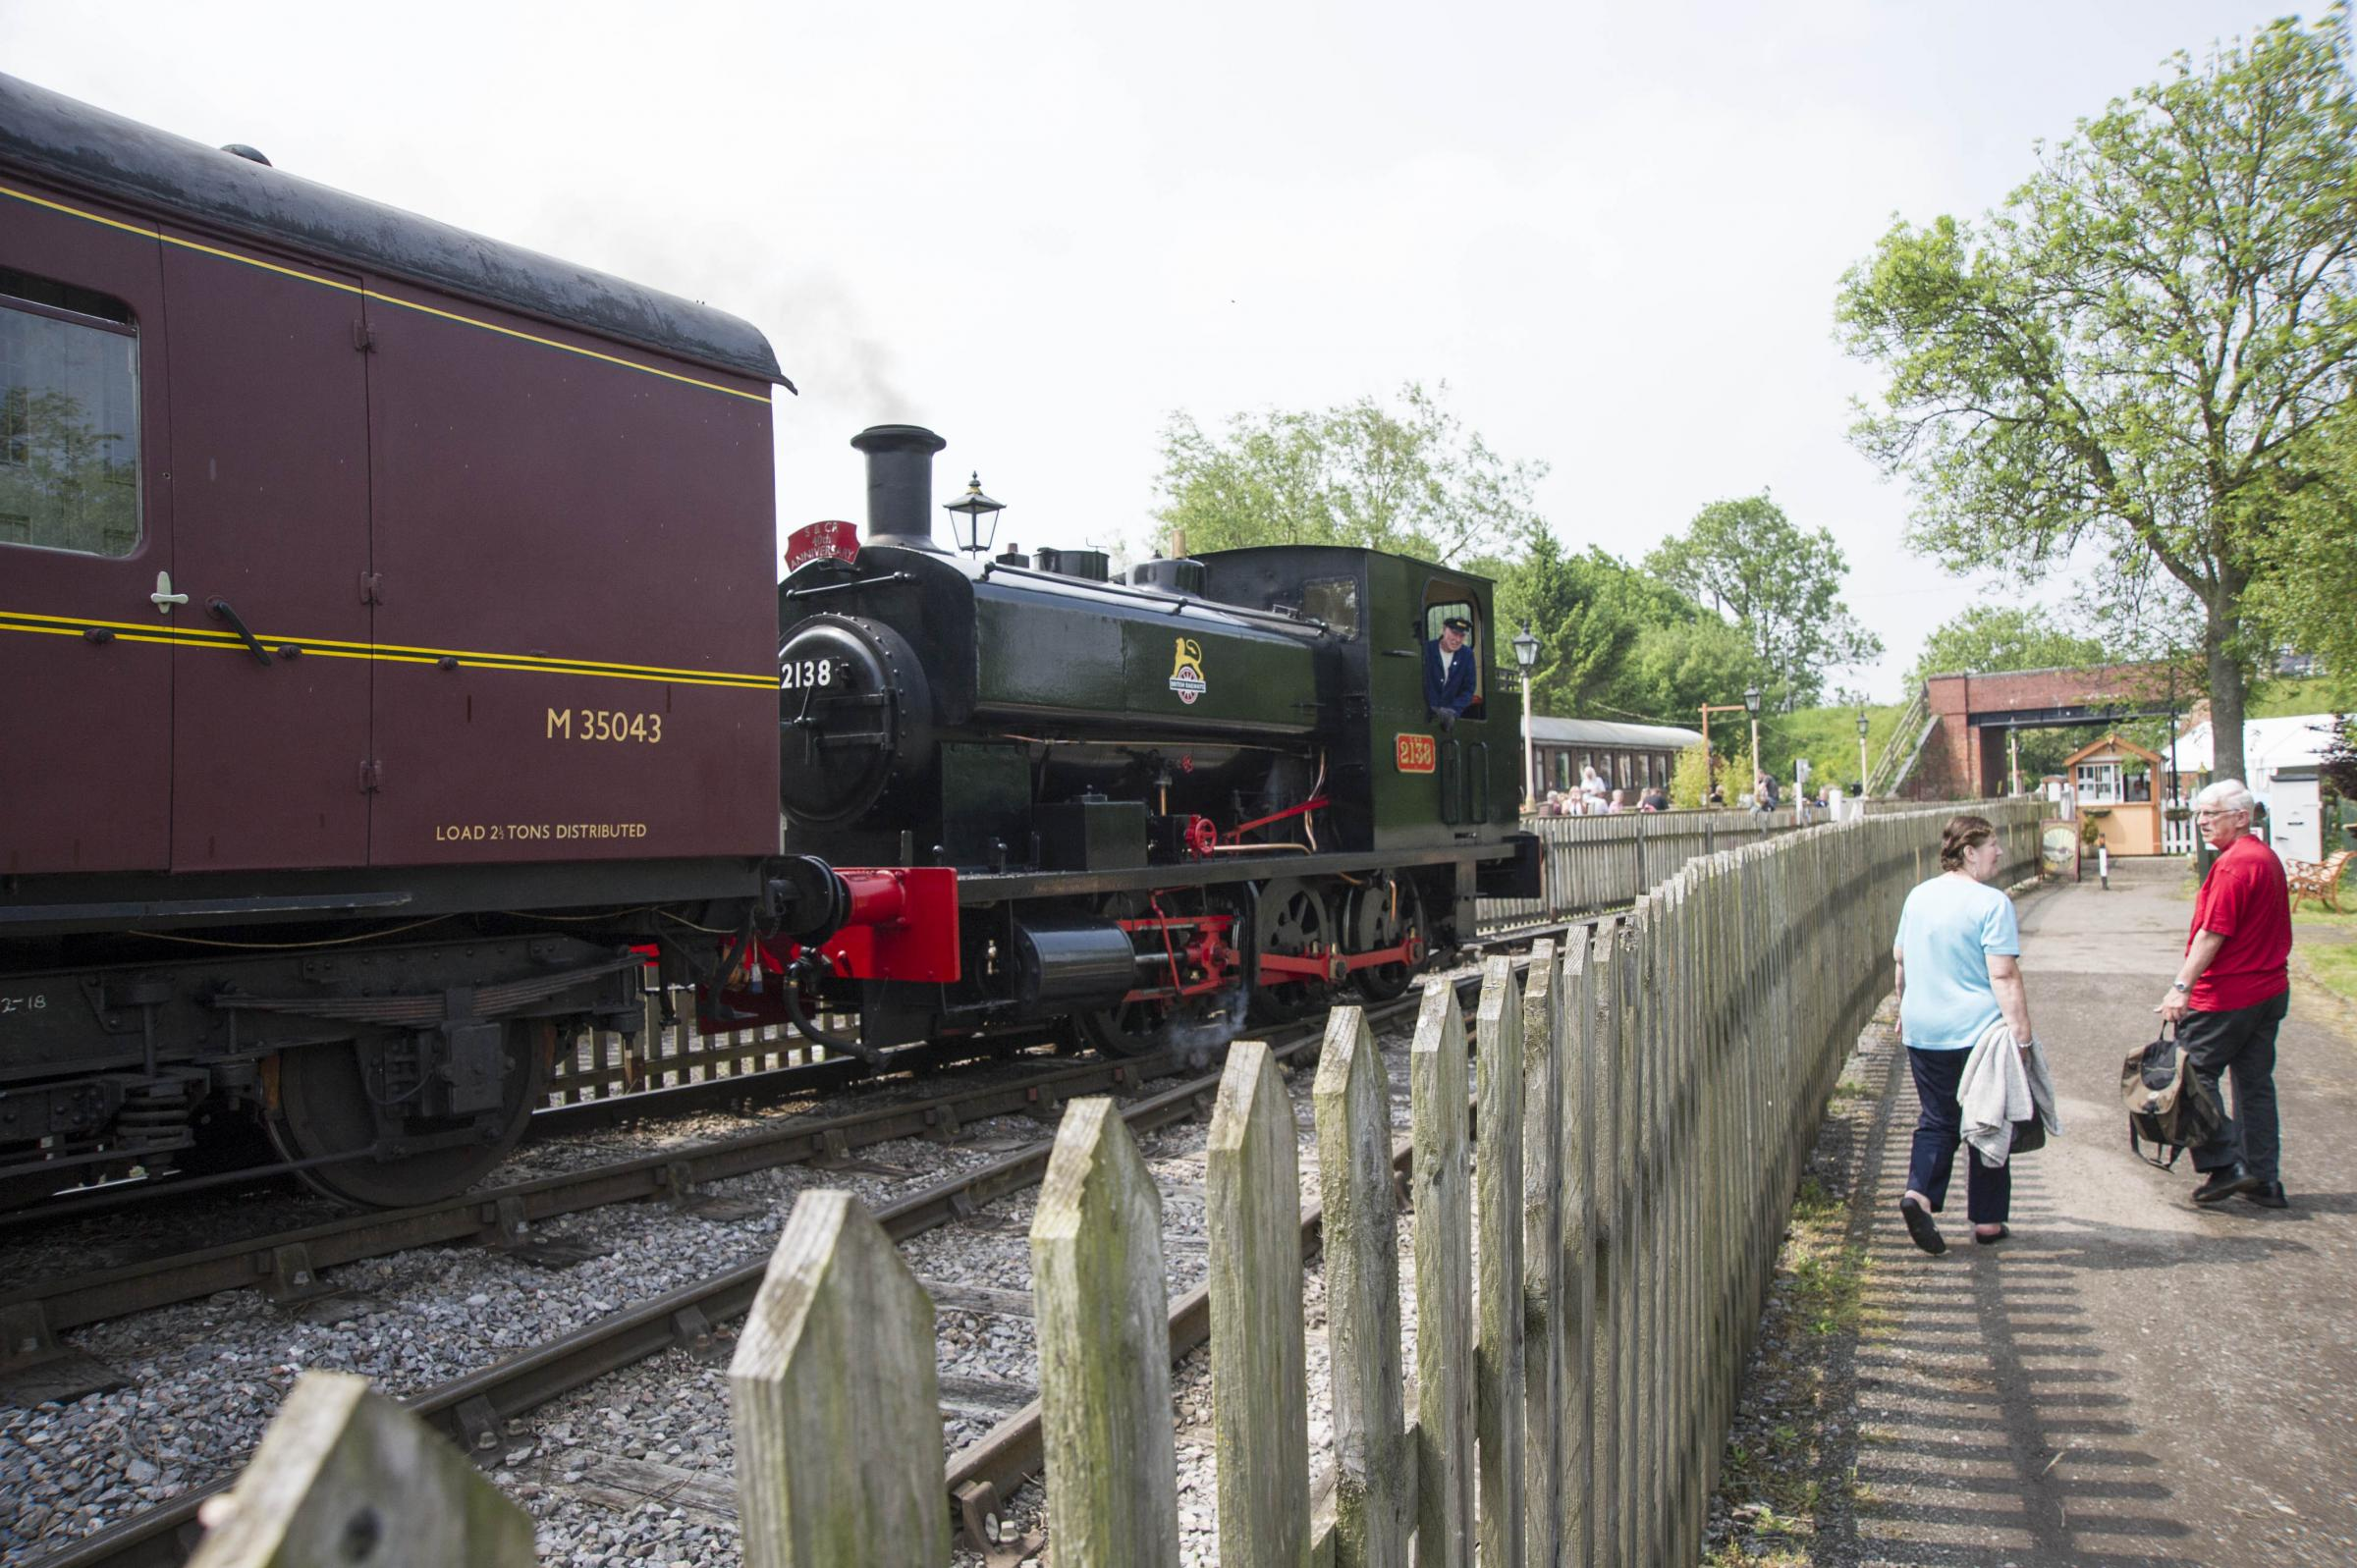 Ale and cider festival at Swindon and Cricklade Railway..Pic - gv.Date 27/5/18.Pic  By Dave Cox.